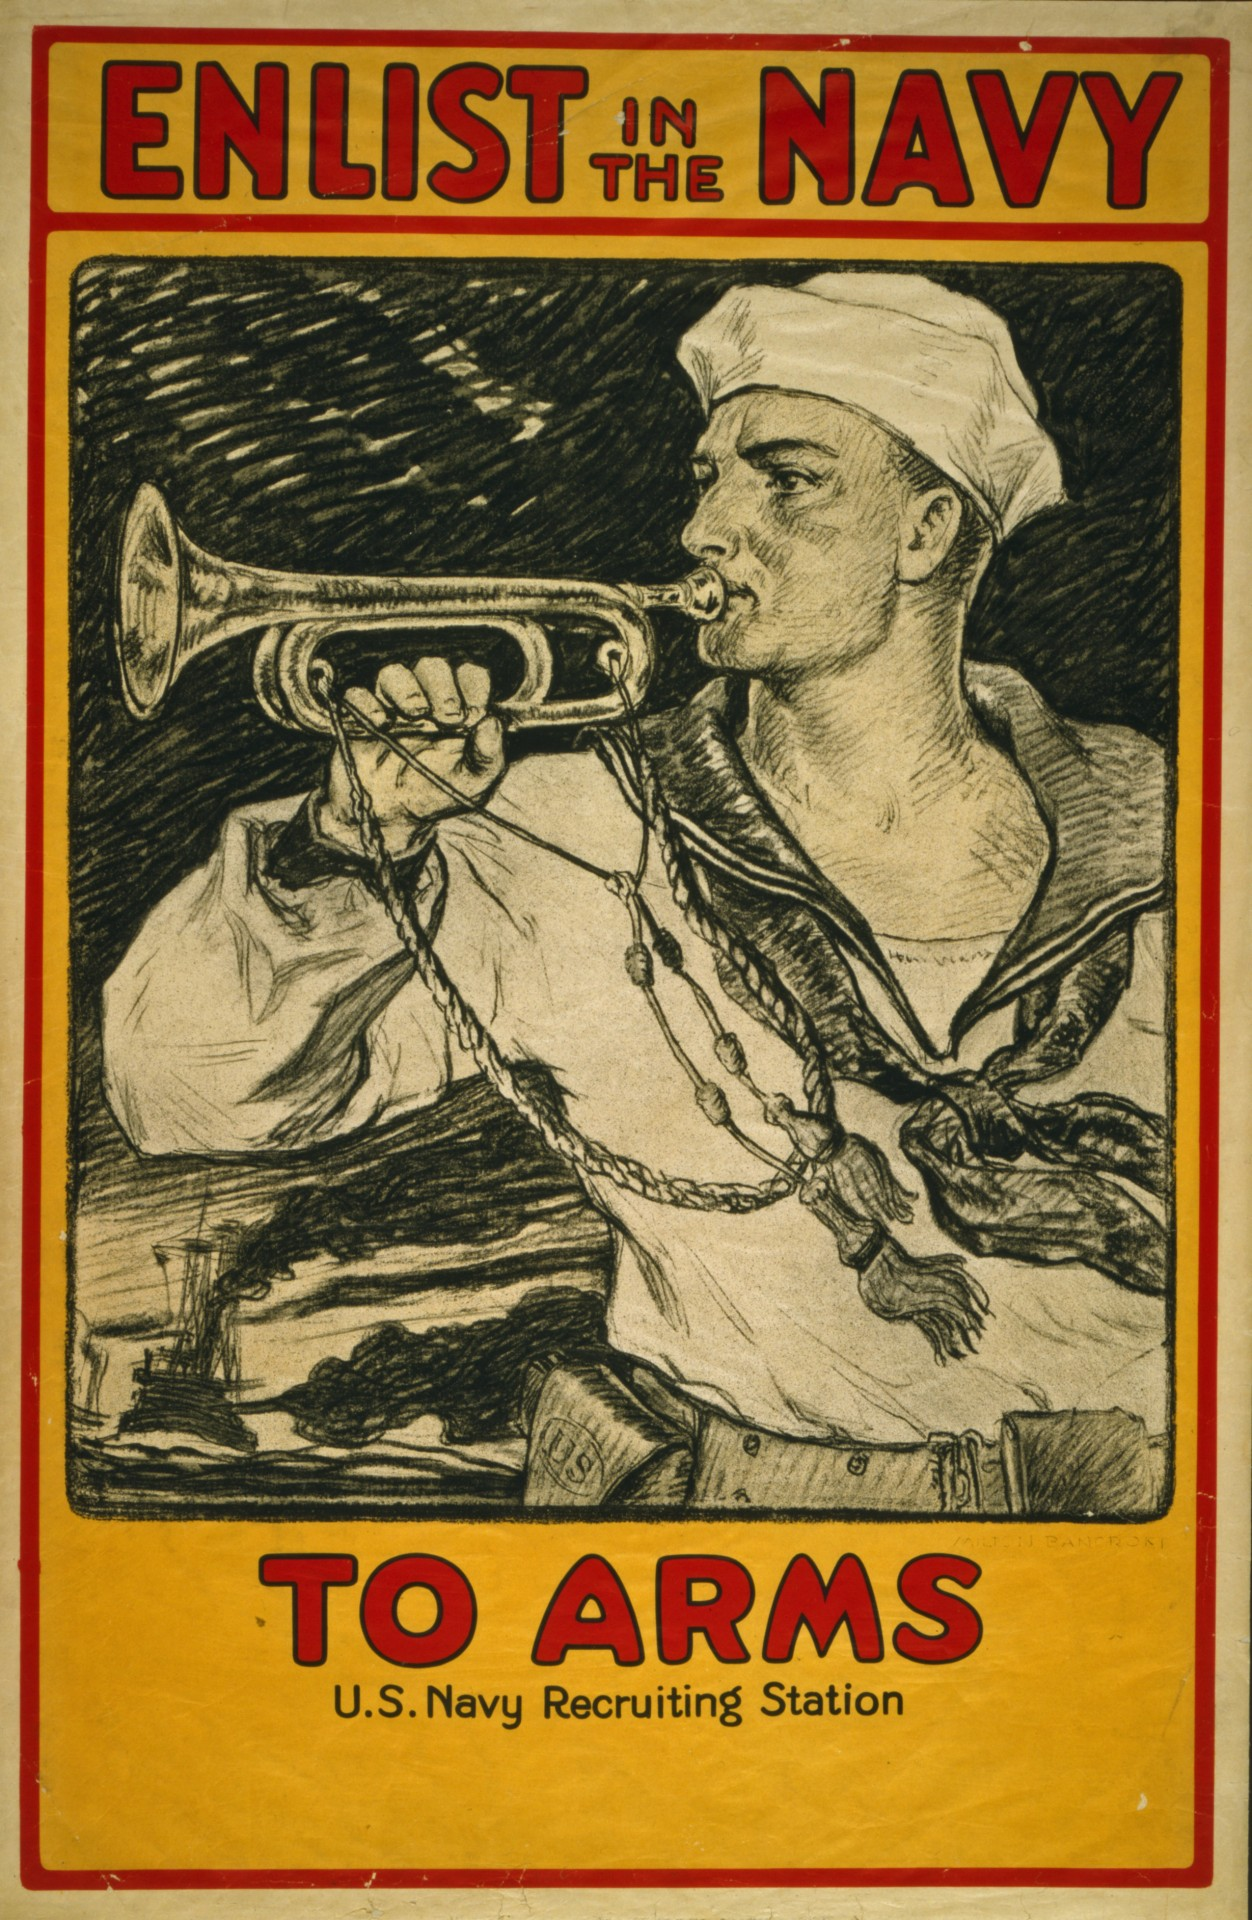 Poster Photos Vintage Navy Poster Free Stock Photo Public Domain Pictures